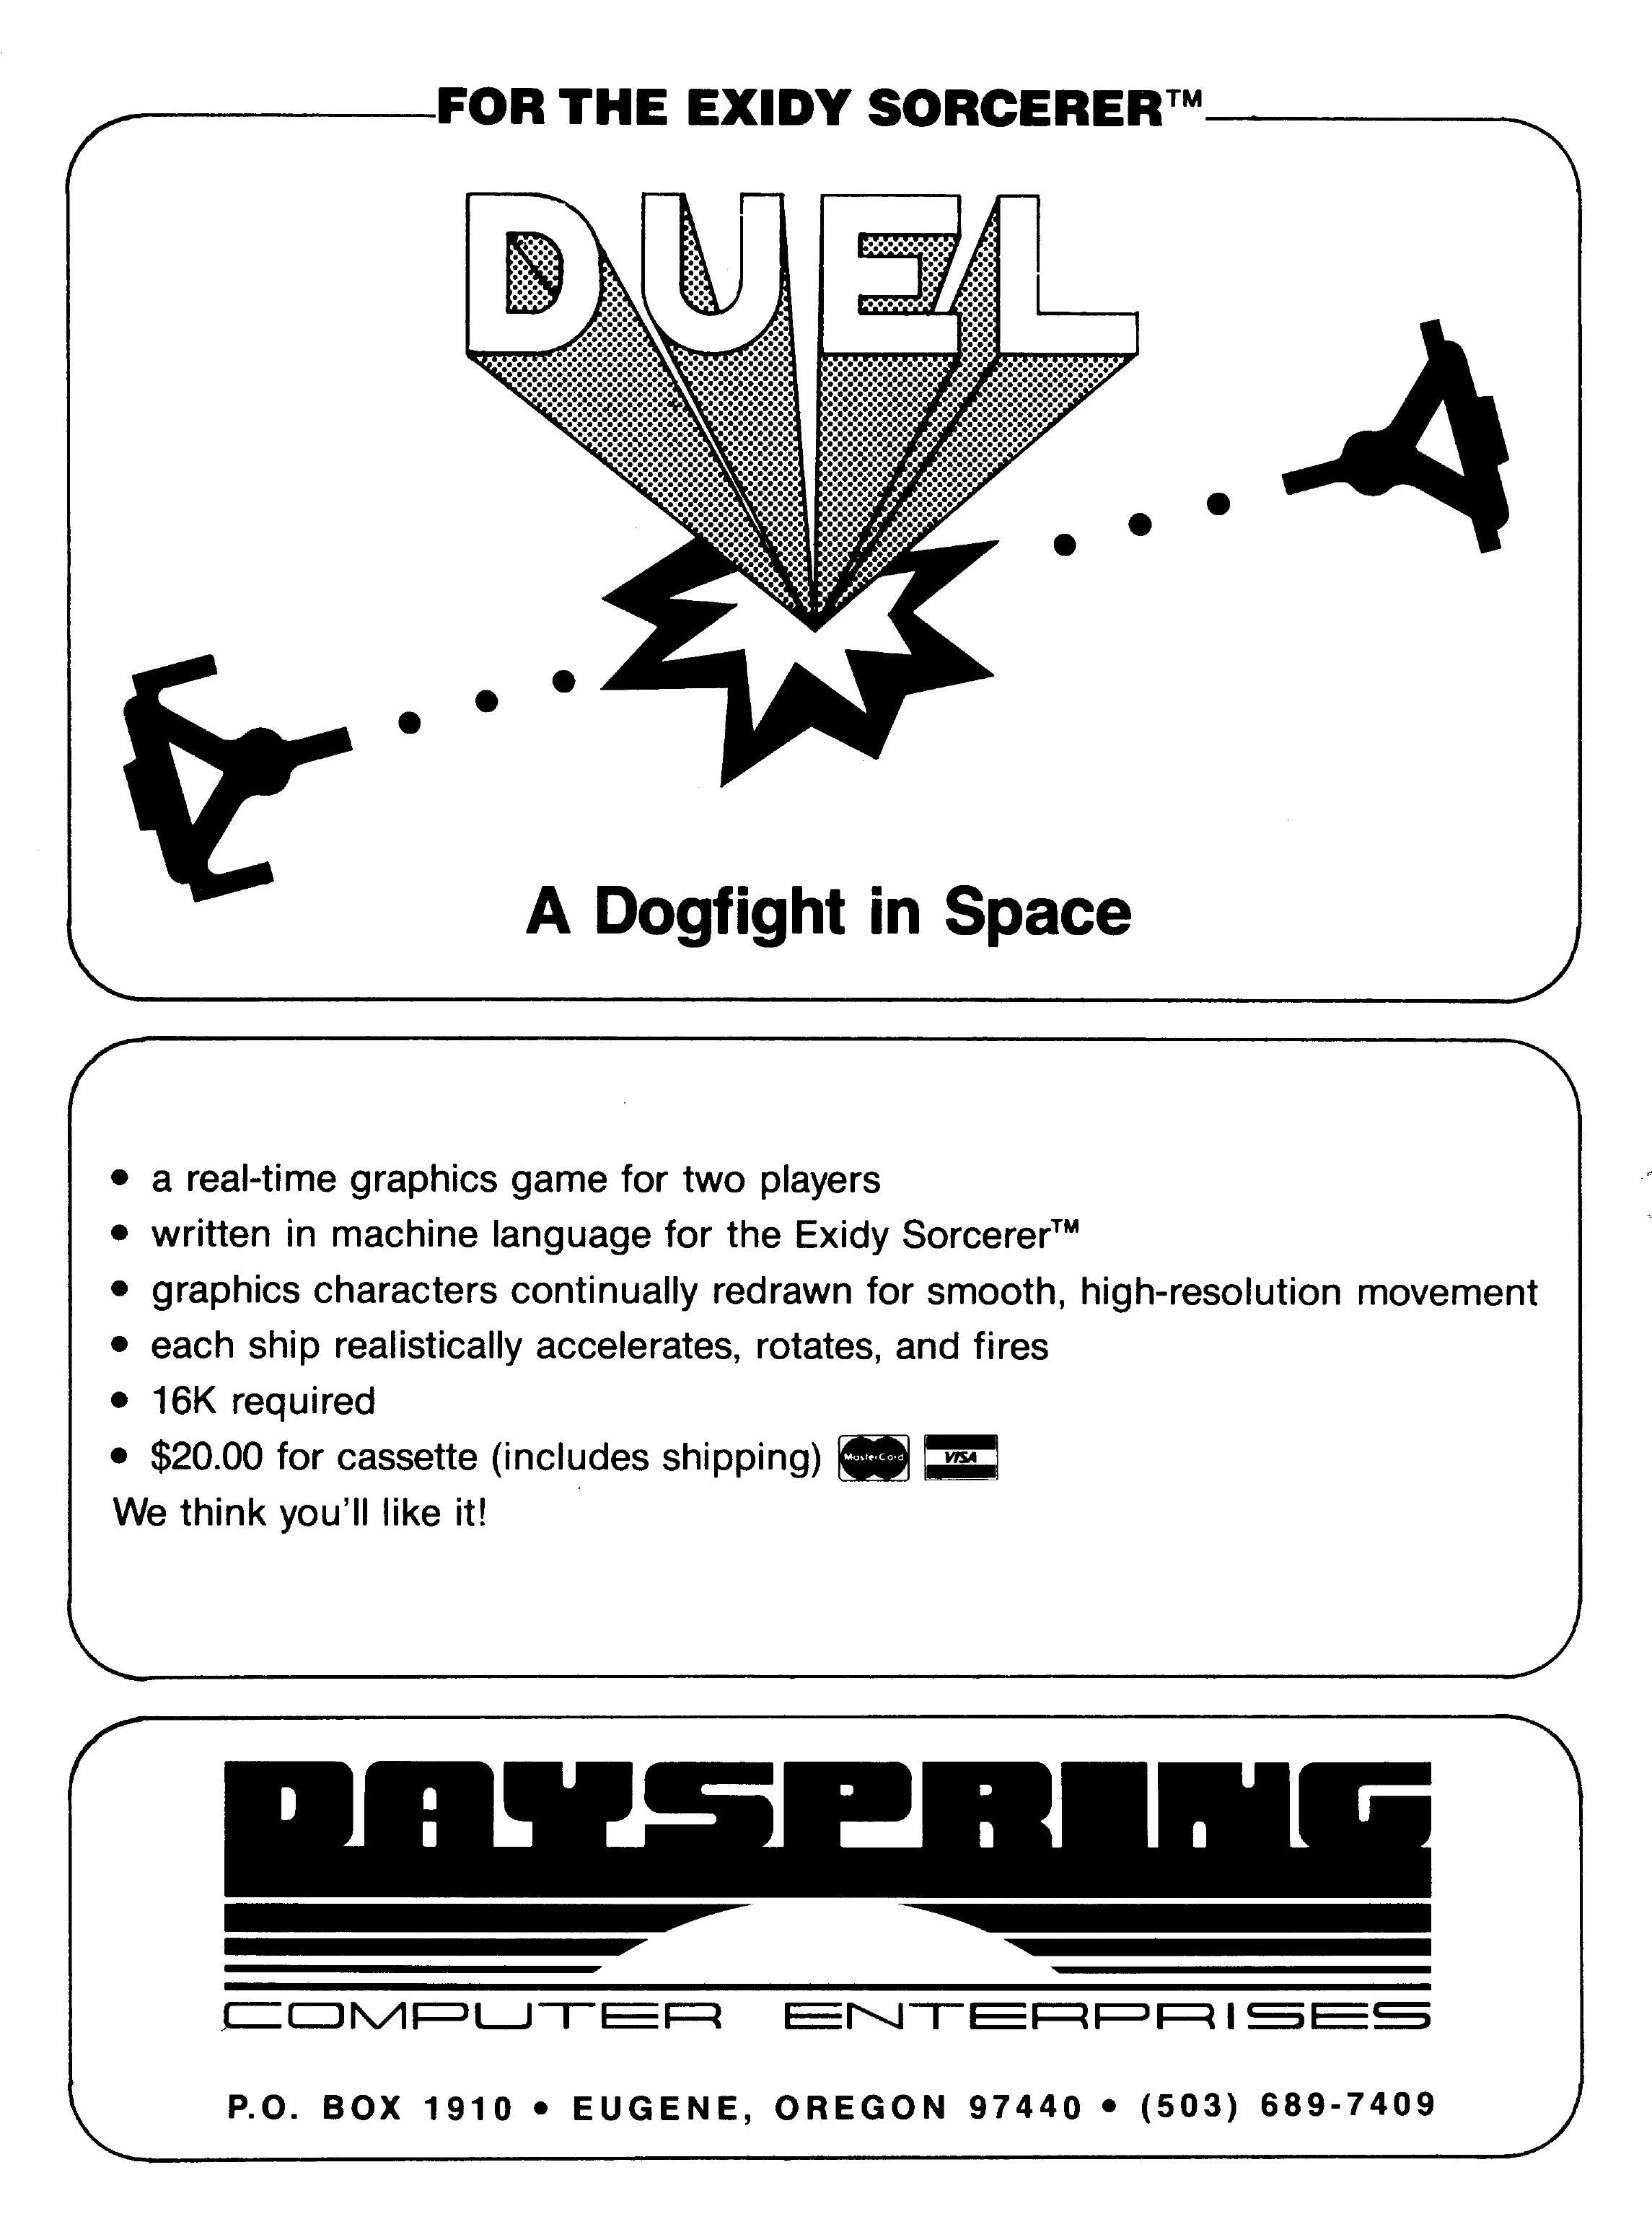 Duel, a Spacewar! computer game clone for the Sorcerer personal computer by the Exidy video game company